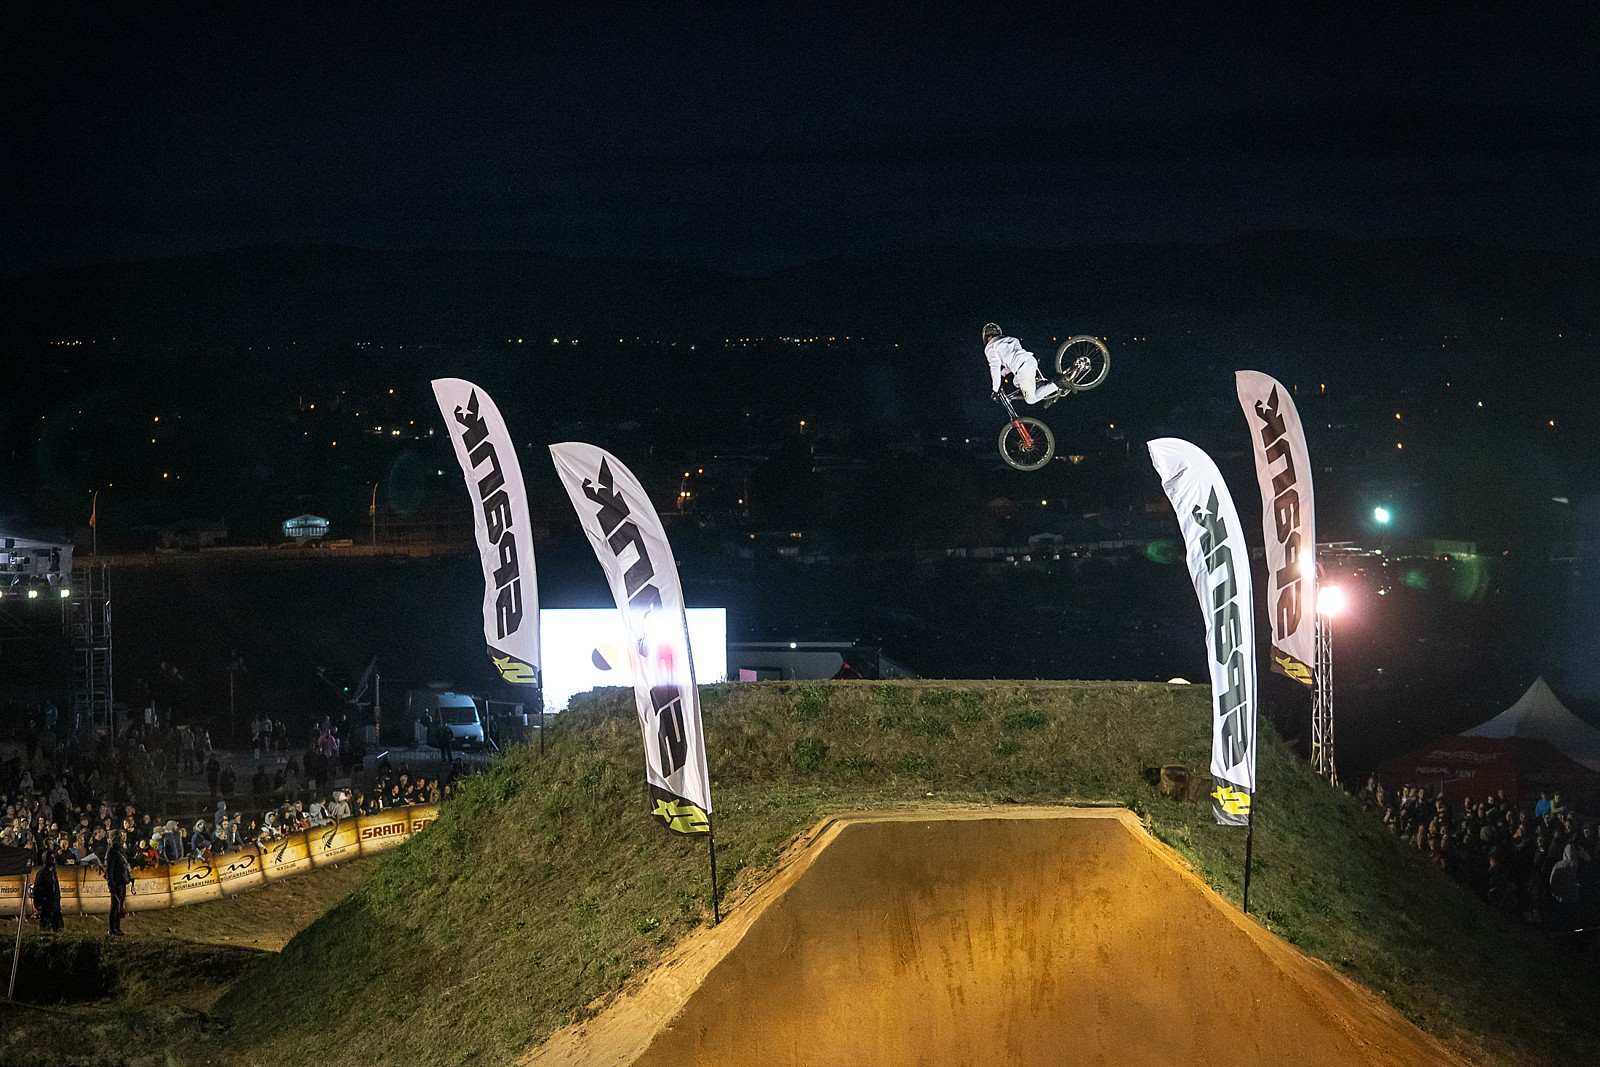 Crankworx NZ Whipoff 2020 - Crankworx New Zealand Whip-Off Photo Gallery - Mountain Biking Pictures - Vital MTB